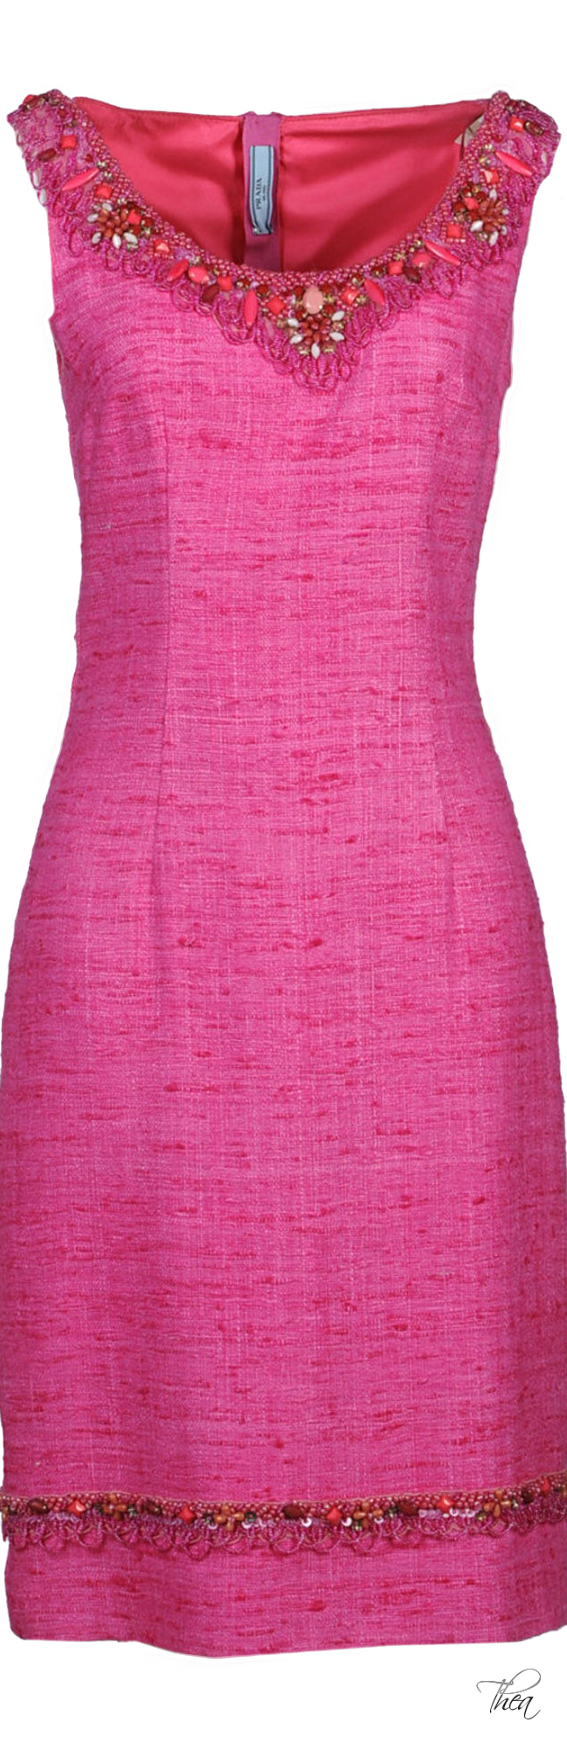 Prada ○ Pink Dress | ROPA | Pinterest | Vestiditos, Vestidos de ...